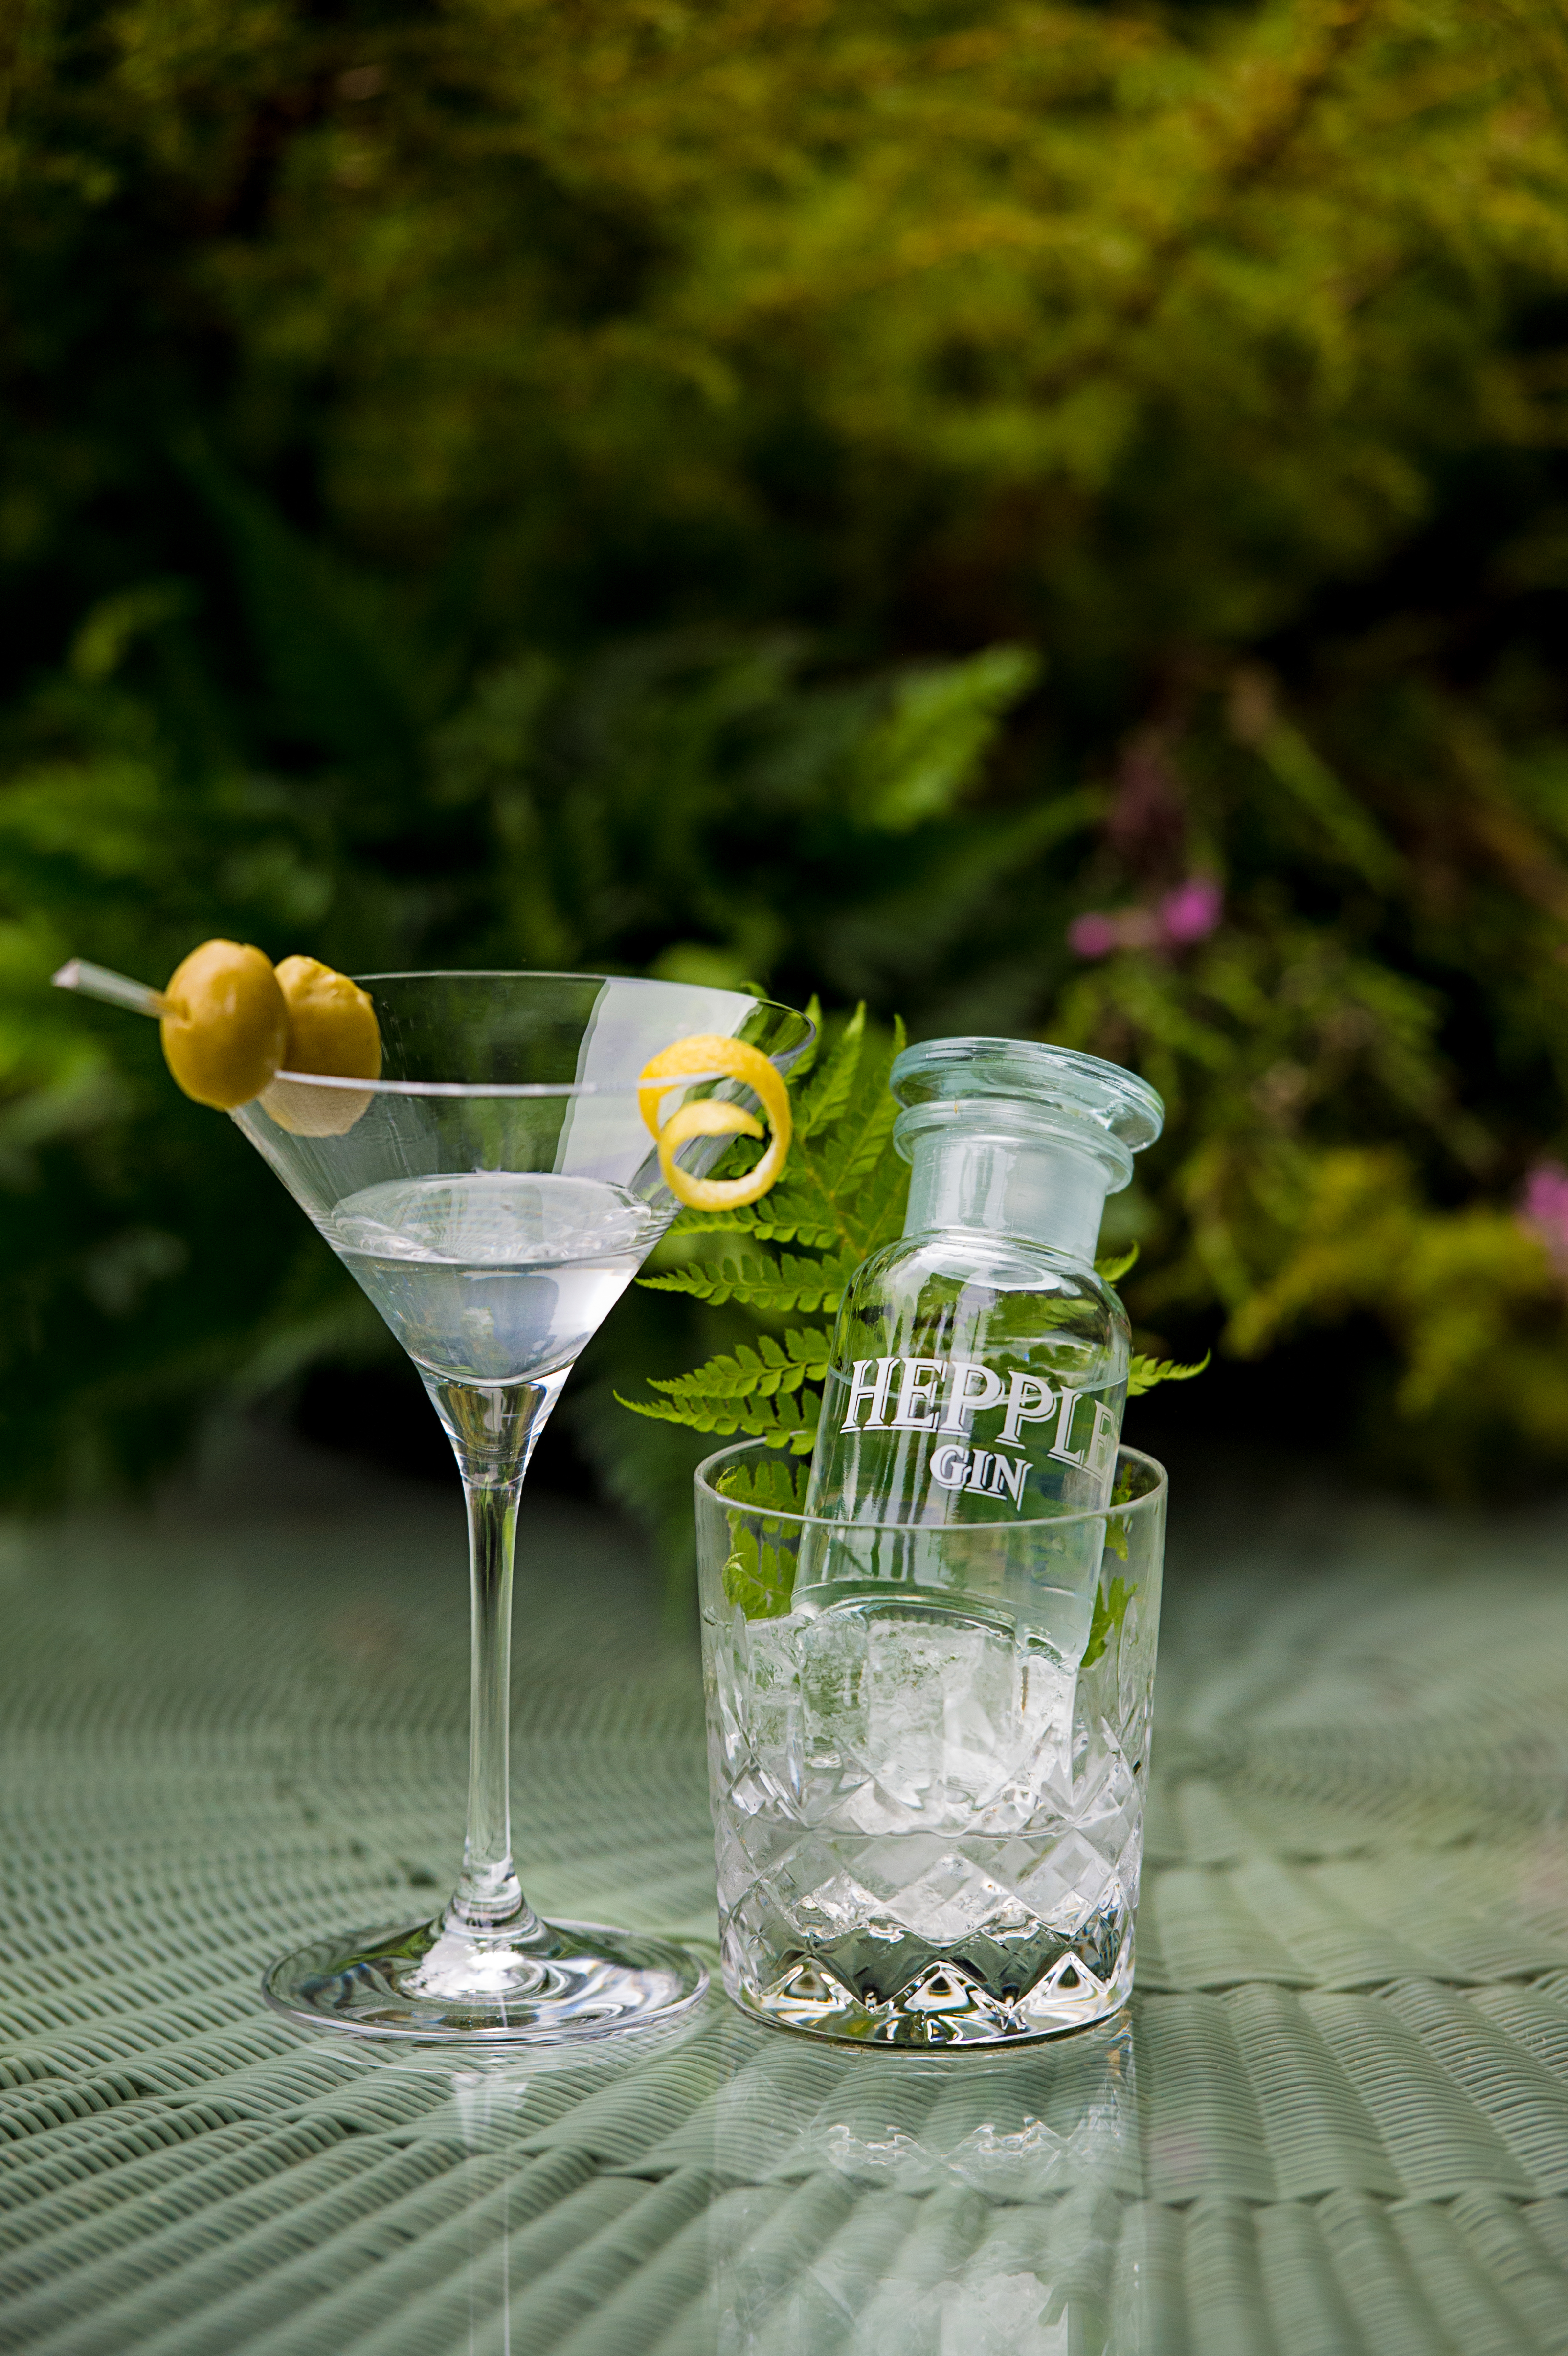 How to make the perfect Martini, with Hepple gin